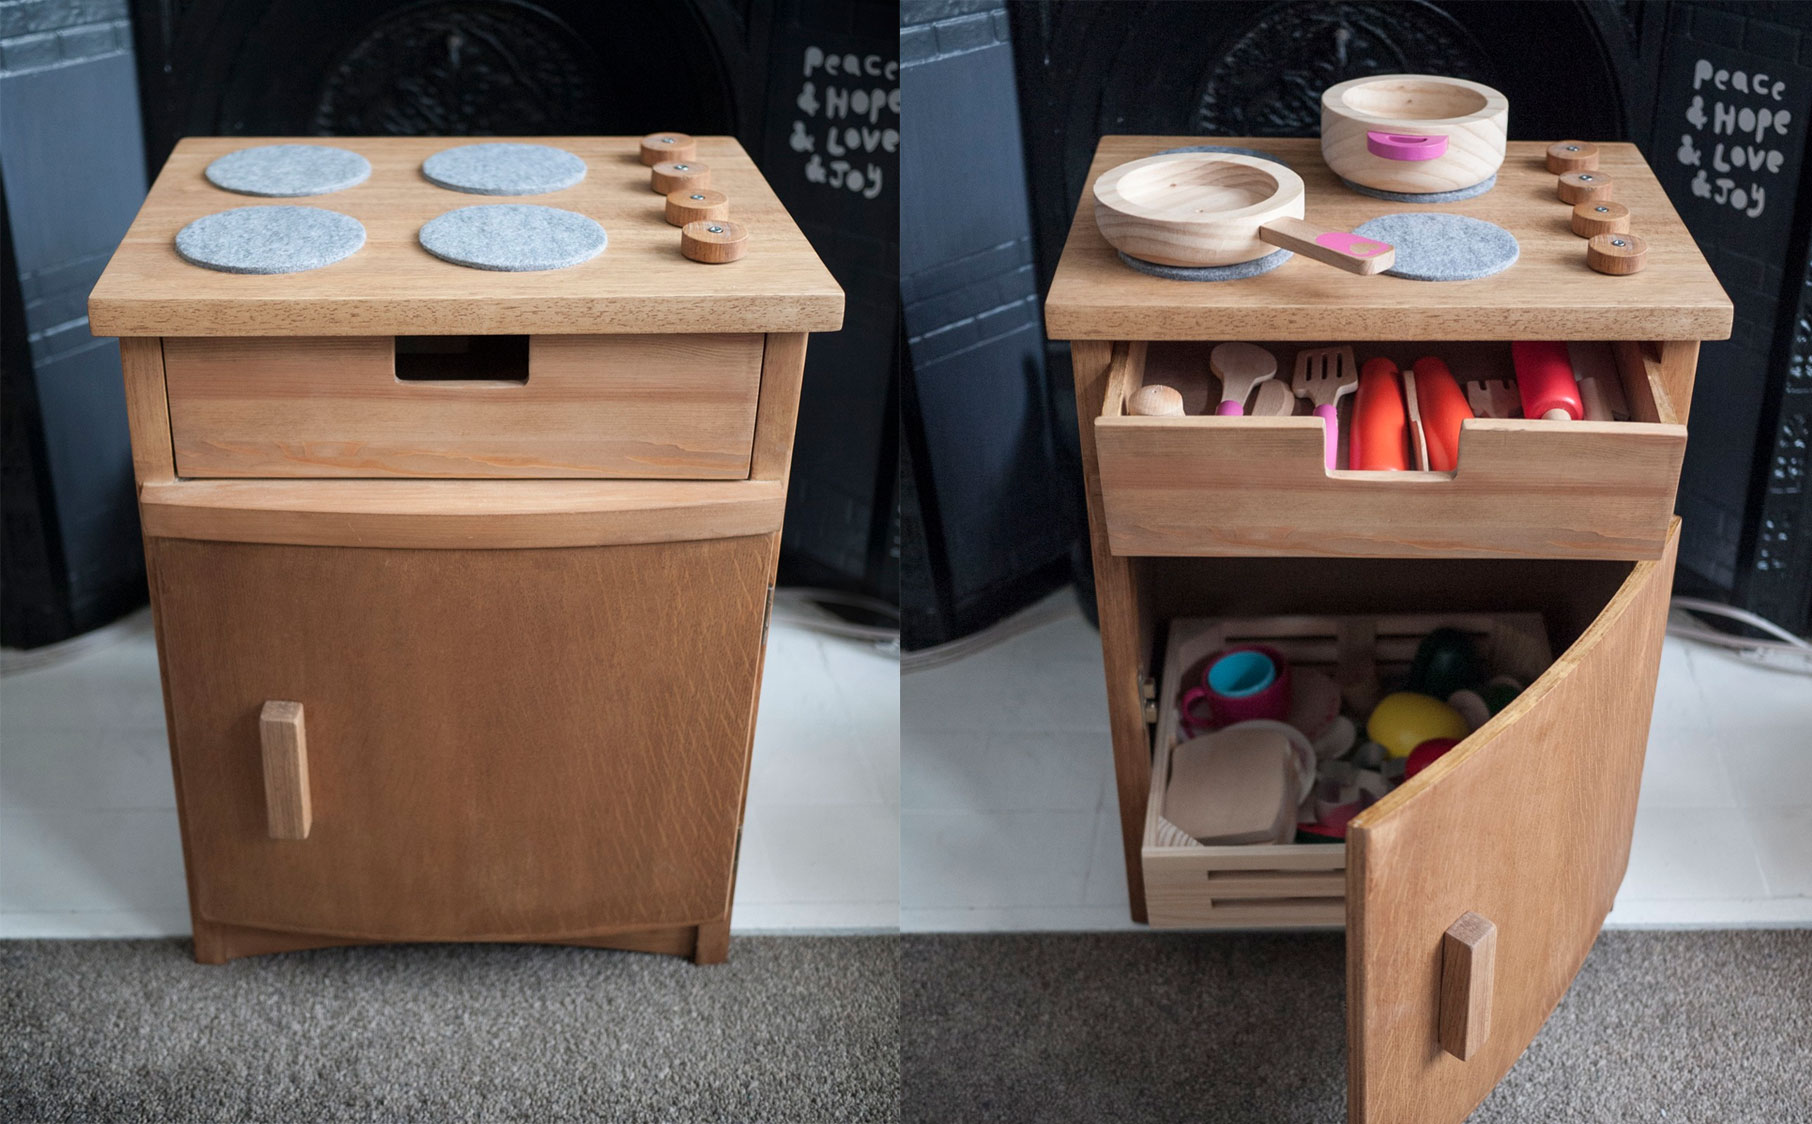 Hey, look I made a toy kitchen!